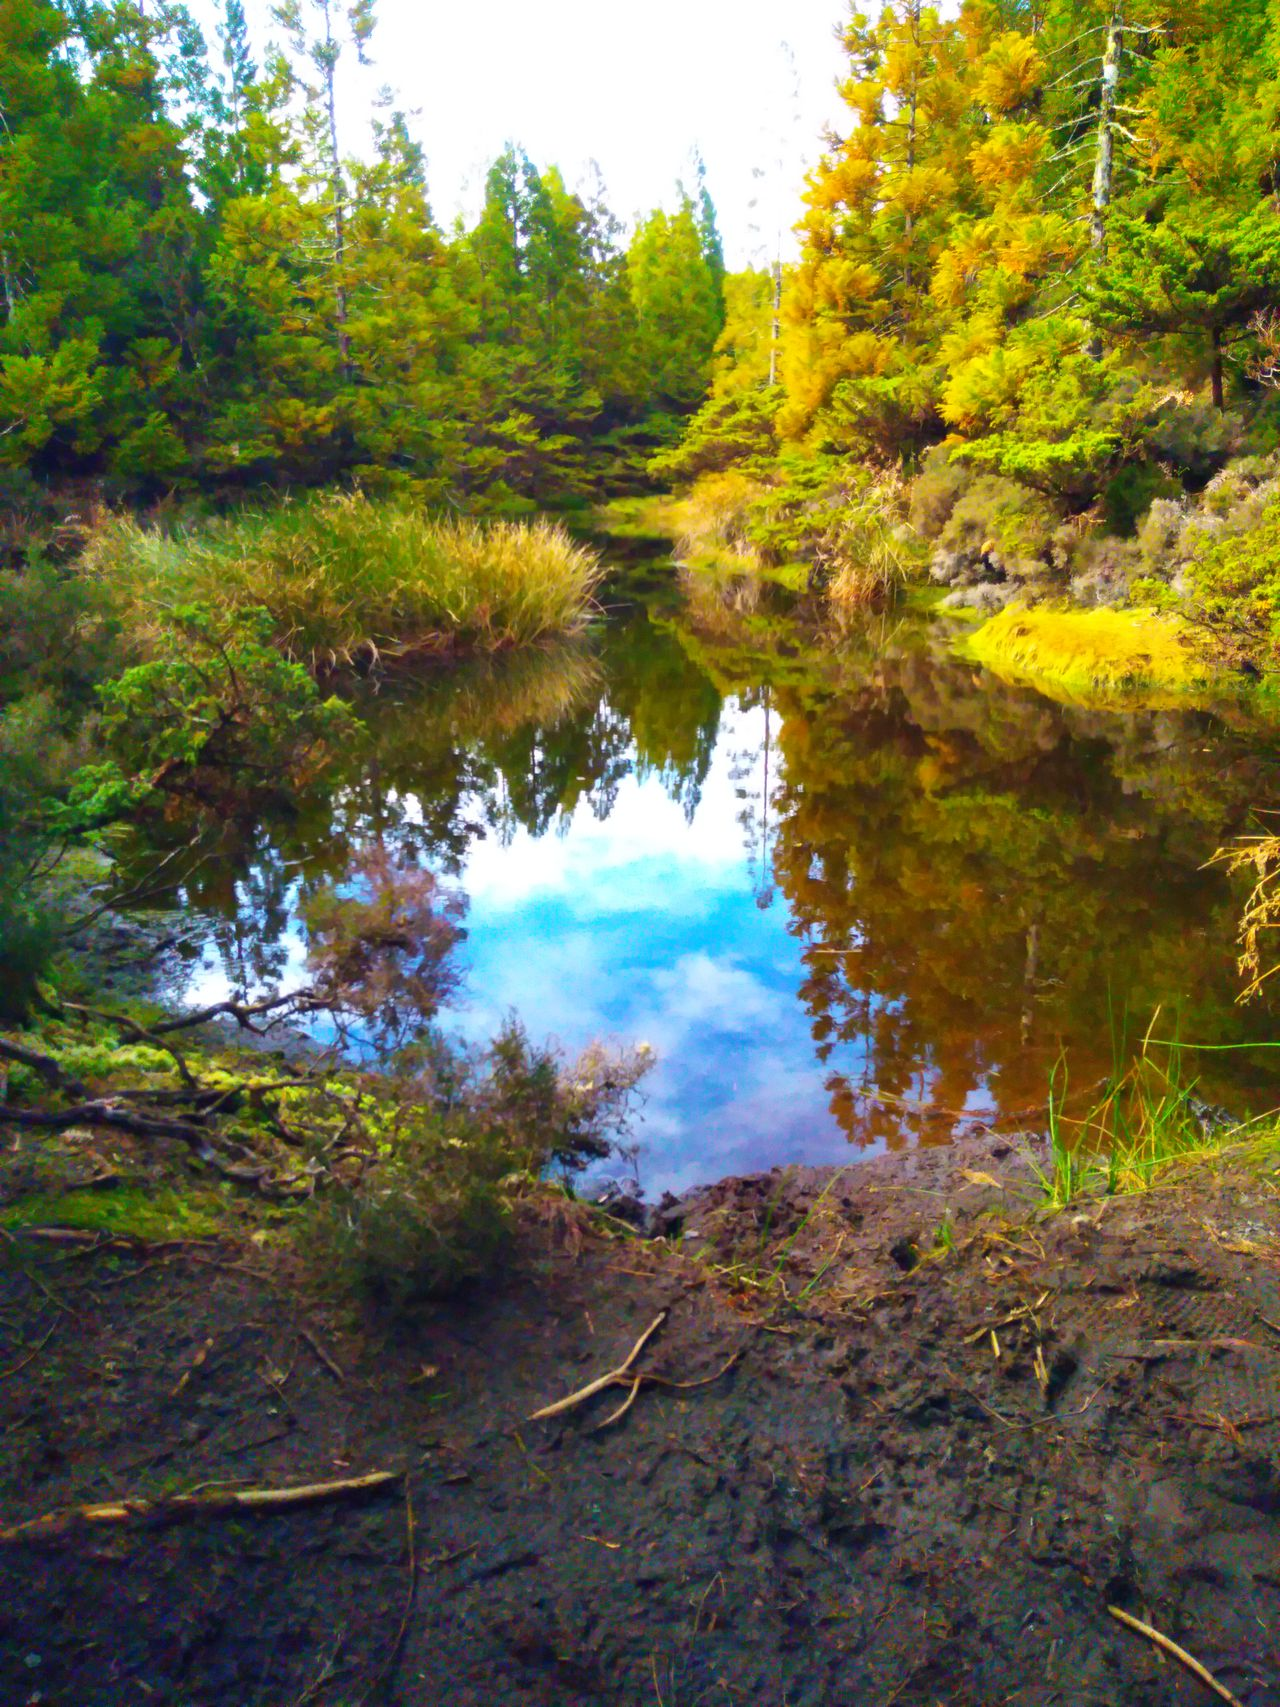 Pond on hiking trail Reflection Tree Nature Water Growth Lake Sky Outdoors No People Reflection Lake Grass Beauty In Nature Day EyeEm Azores Eyeem Market EyeEmNewHere EyeEm Gallery Rural Scene Nature Sunlight Green Color